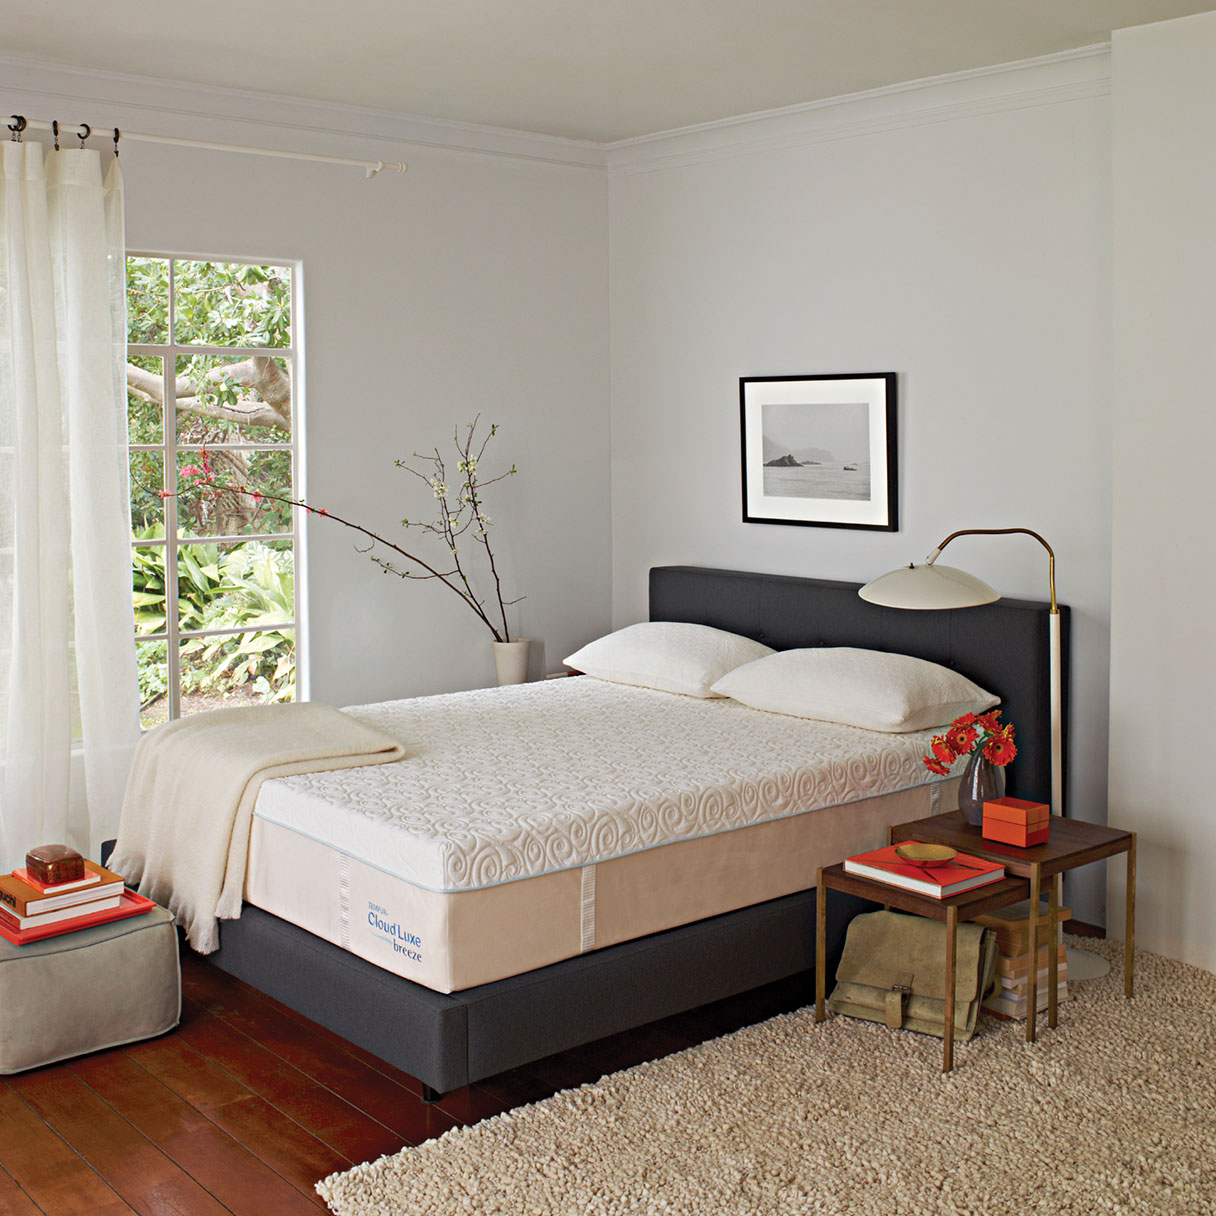 More Ways To Shop Featured Brands Tempur Pedic